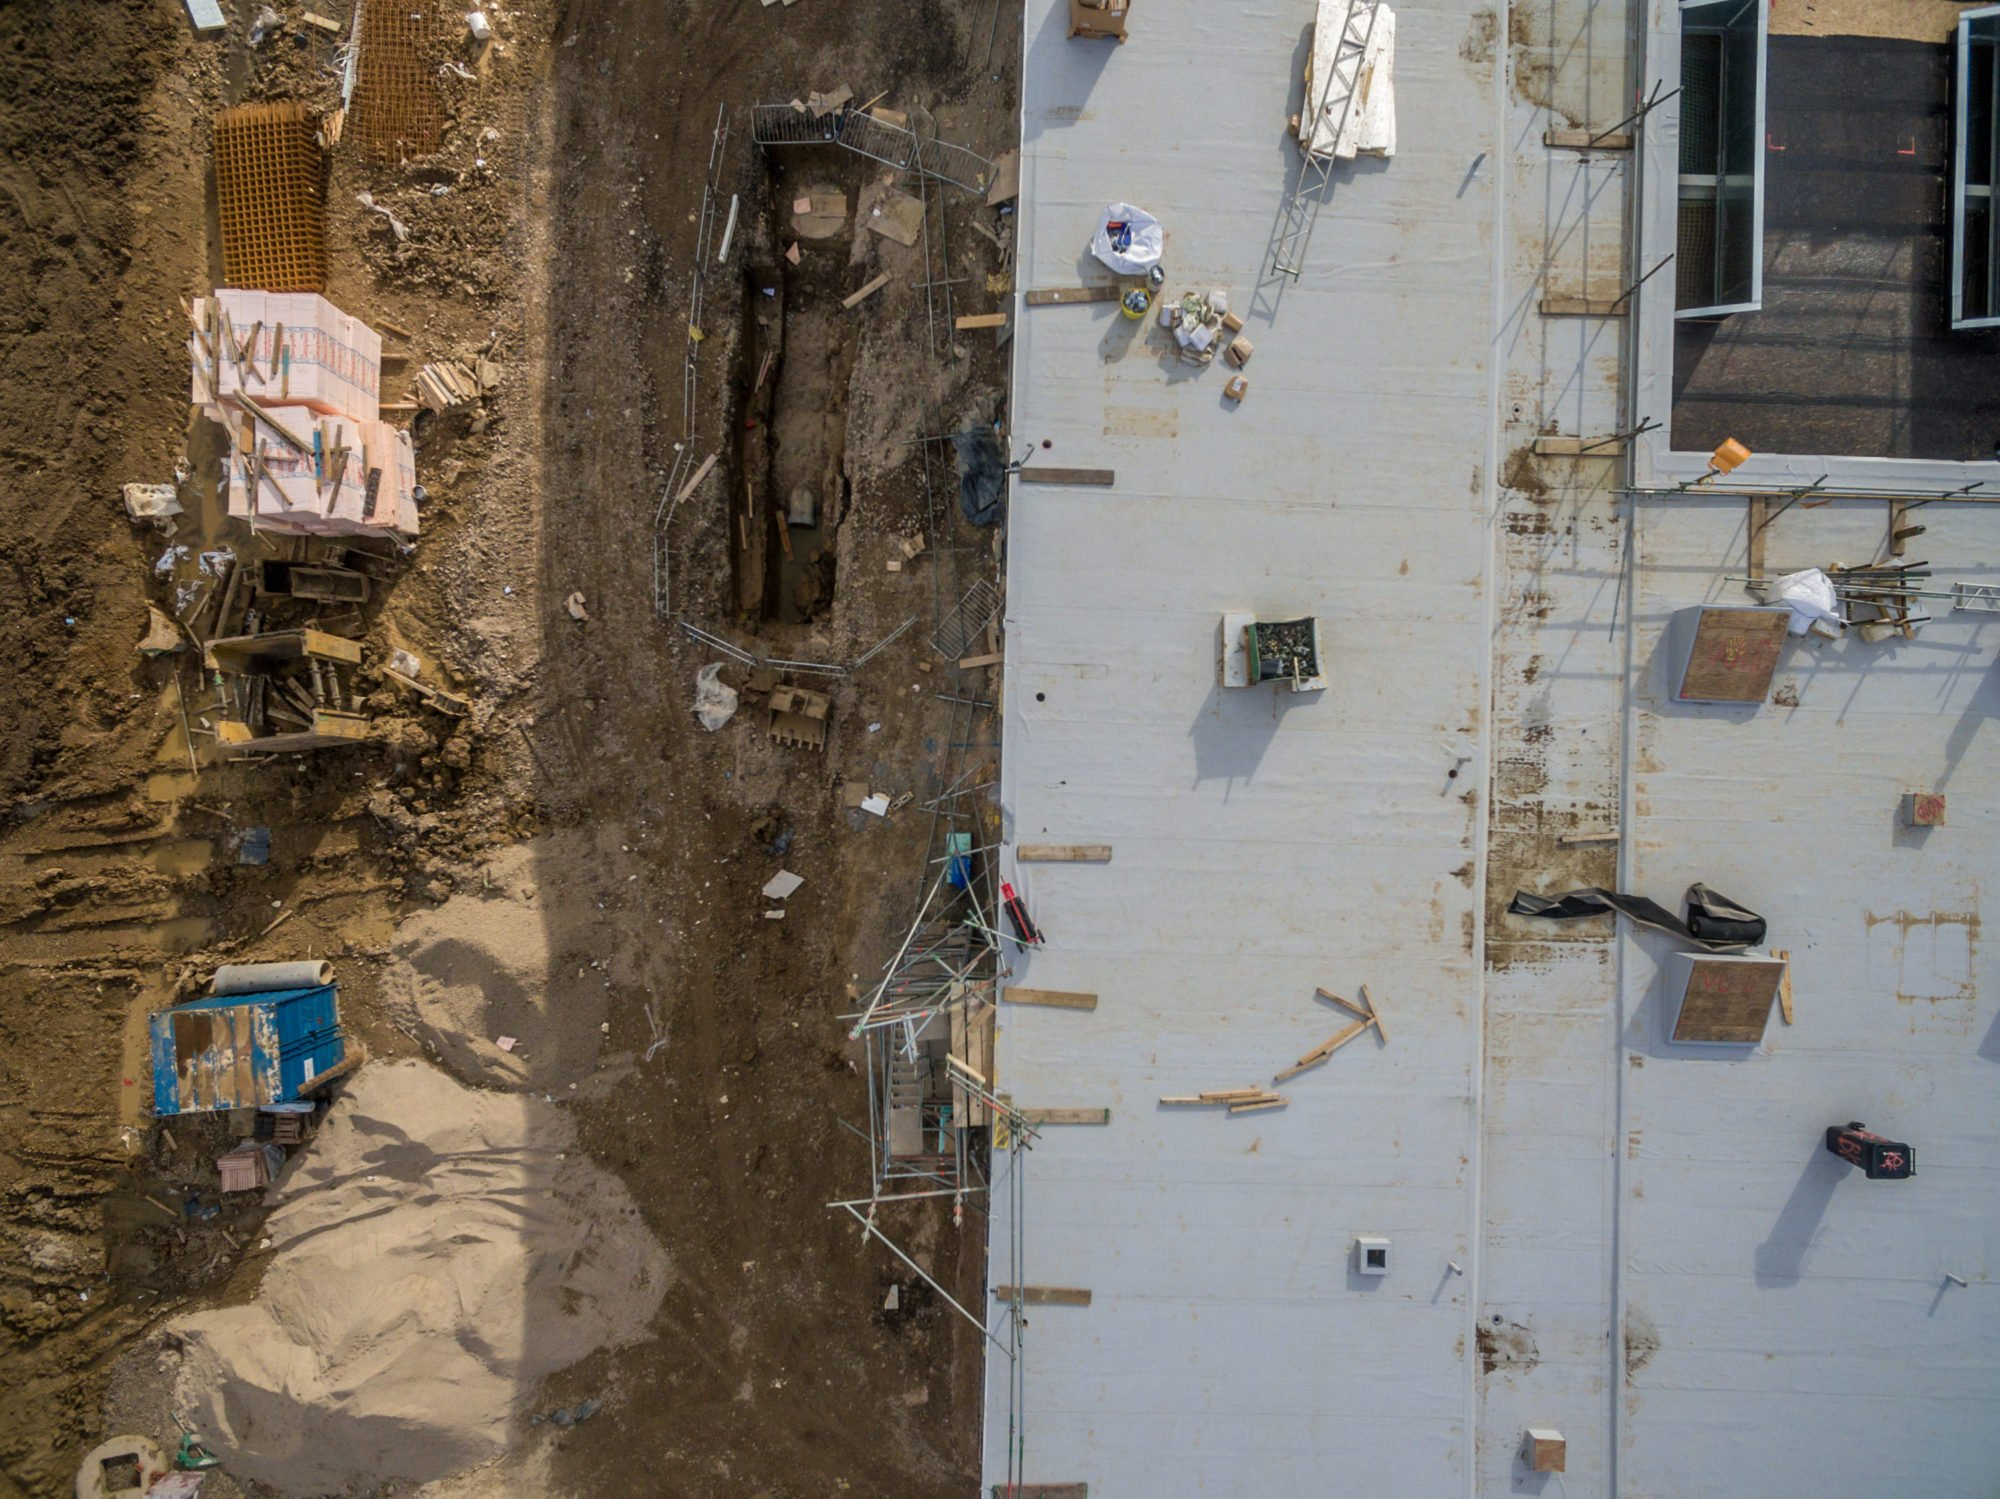 Aerial view of a drone inspection of building site damage due to extreme weather